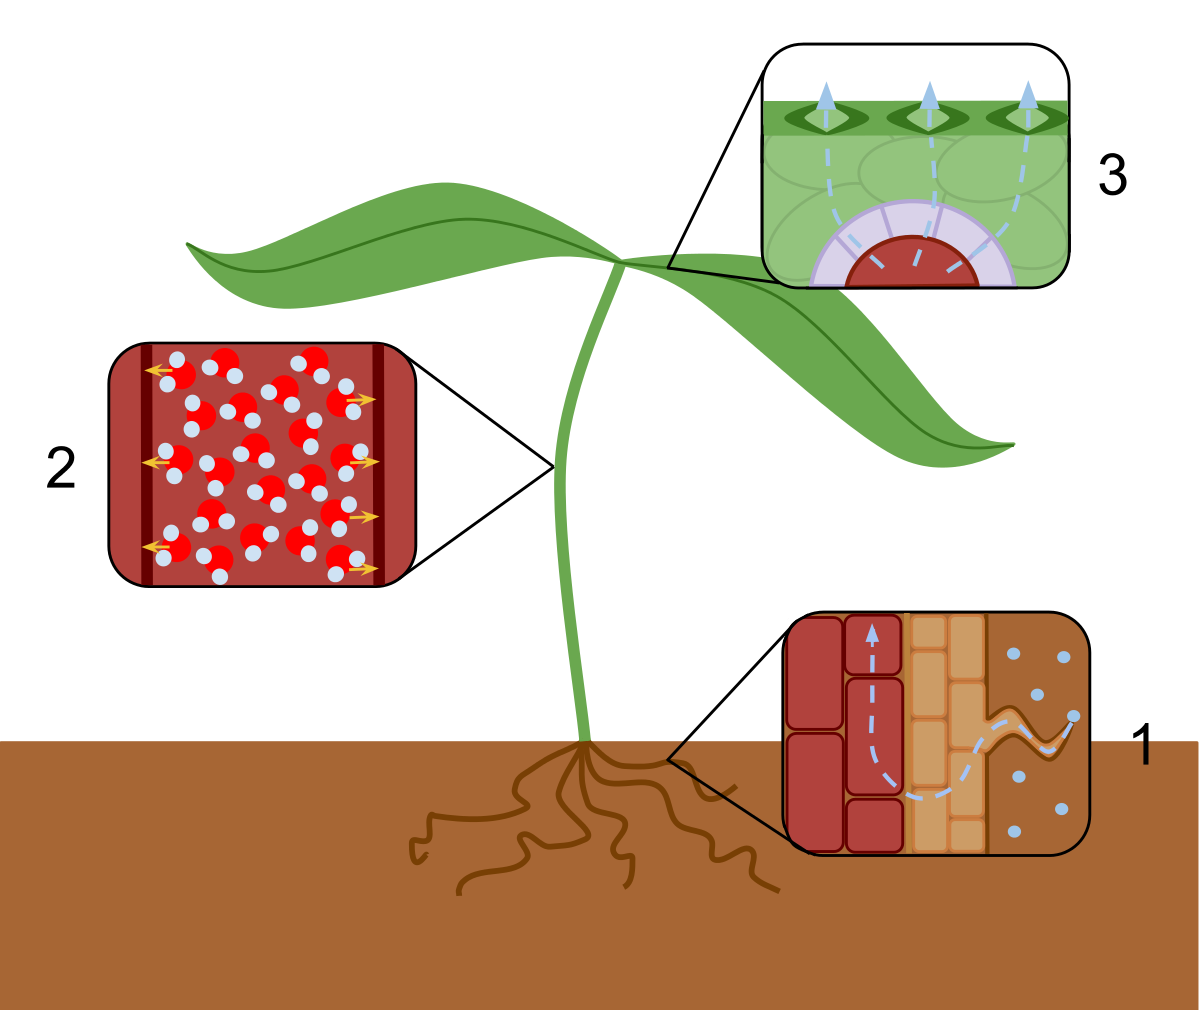 Clipart definition encyclopedia. Transpiration wikipedia